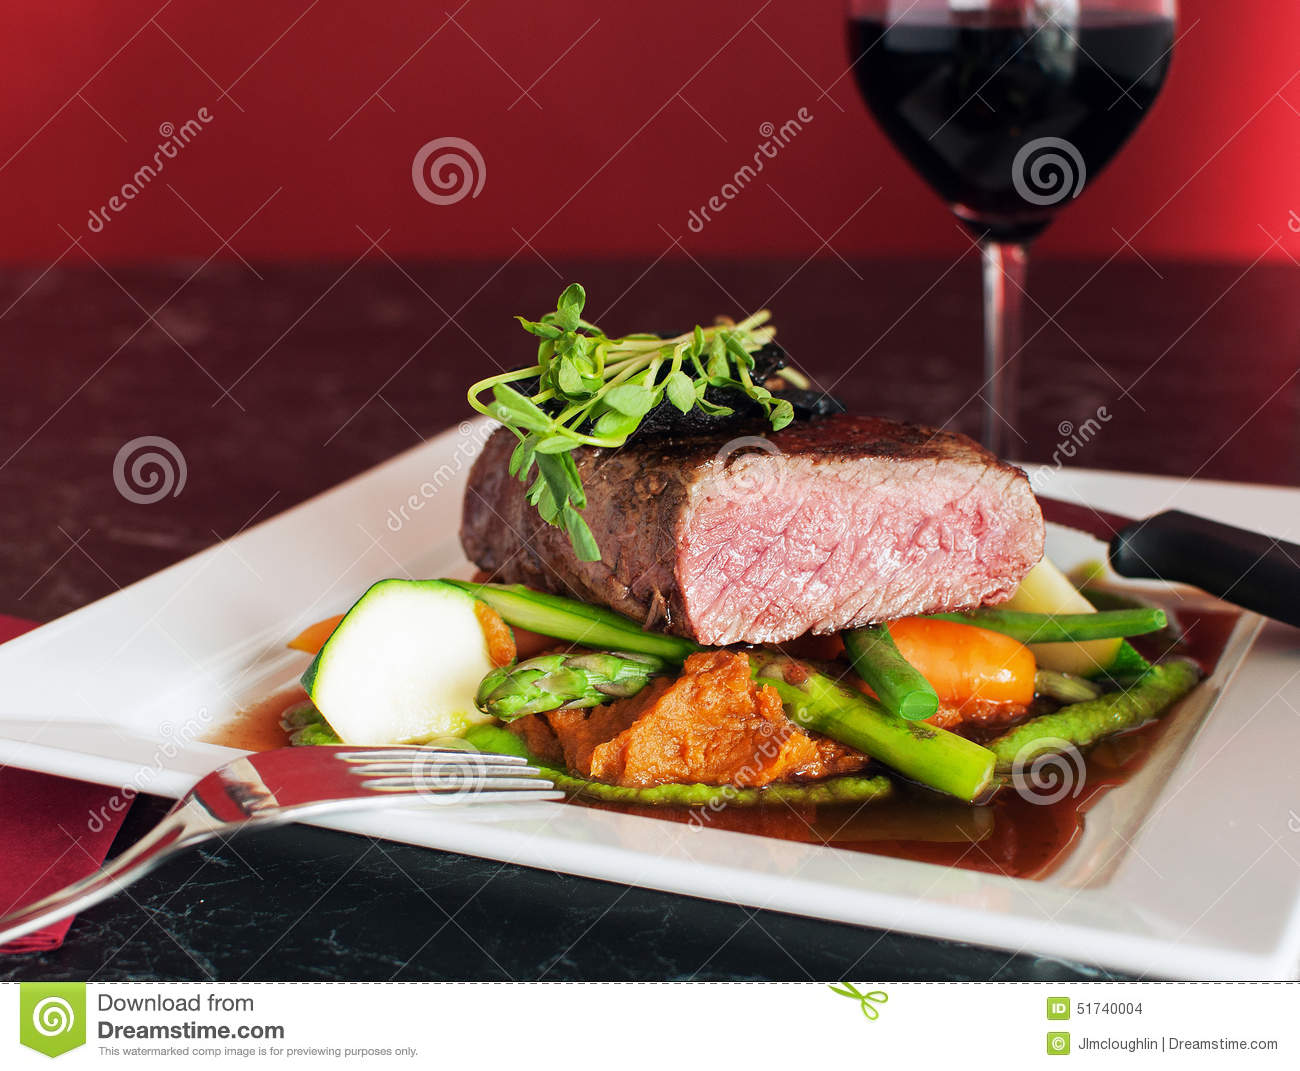 Fine Dining Beef Steak With Vegetables Stock Photo - Image ...